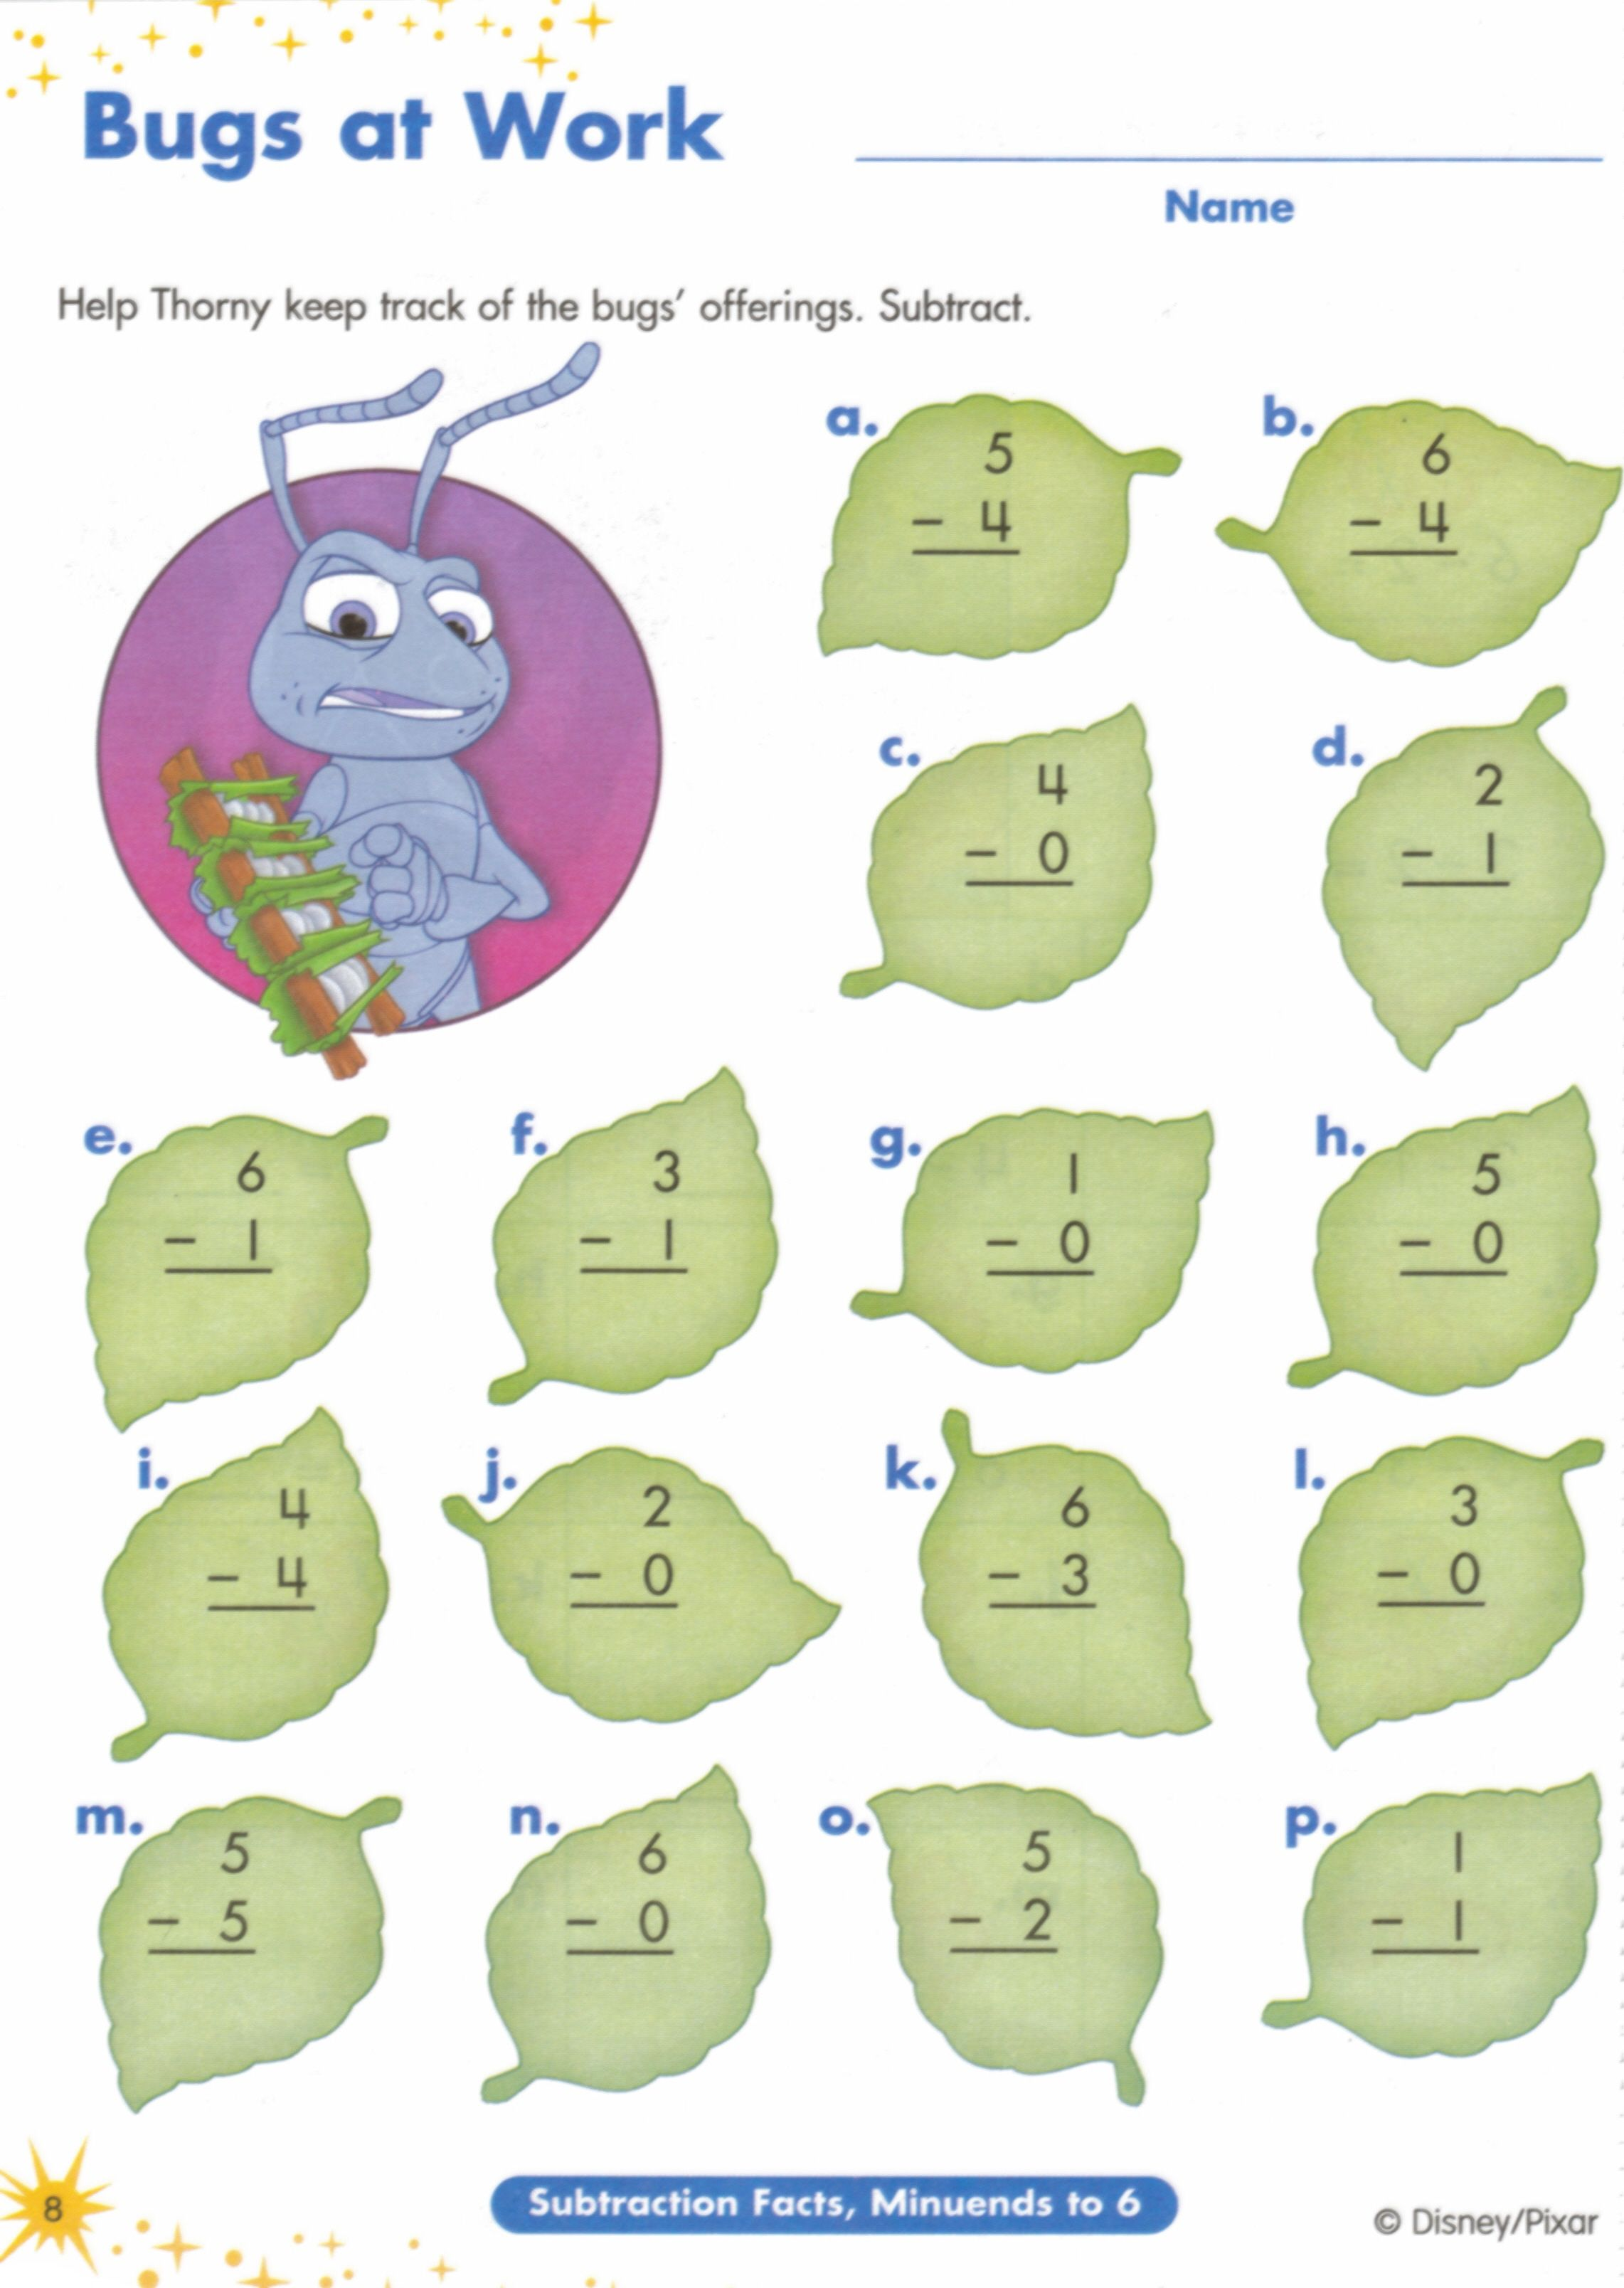 Aldiablosus  Scenic  Images About Worksheets On Pinterest  Fun Facts For Kids  With Hot  Images About Worksheets On Pinterest  Fun Facts For Kids Earth Day Worksheets And Jungles With Attractive Sight Words Worksheets Printable Also Seafloor Spreading Worksheet In Addition Vowels Worksheets For Preschoolers And Solving Trig Identities Worksheet As Well As Multiplying Two Binomials Worksheet Additionally Self Employed Borrower Worksheet From Pinterestcom With Aldiablosus  Hot  Images About Worksheets On Pinterest  Fun Facts For Kids  With Attractive  Images About Worksheets On Pinterest  Fun Facts For Kids Earth Day Worksheets And Jungles And Scenic Sight Words Worksheets Printable Also Seafloor Spreading Worksheet In Addition Vowels Worksheets For Preschoolers From Pinterestcom